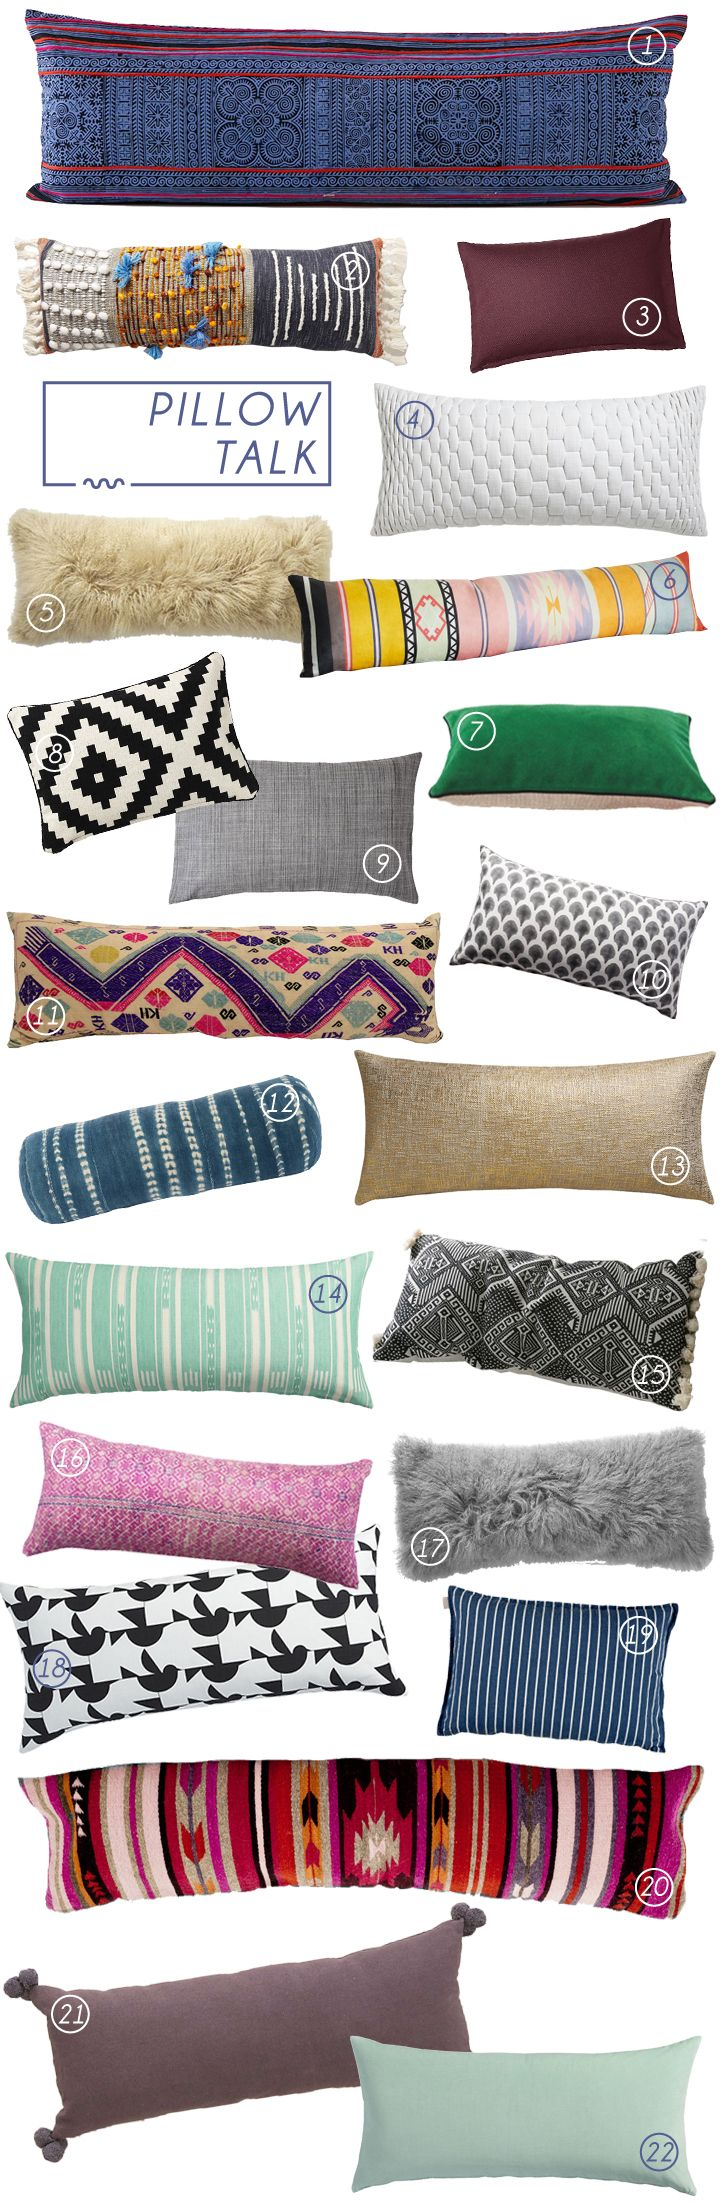 the extra long pillow emily henderson